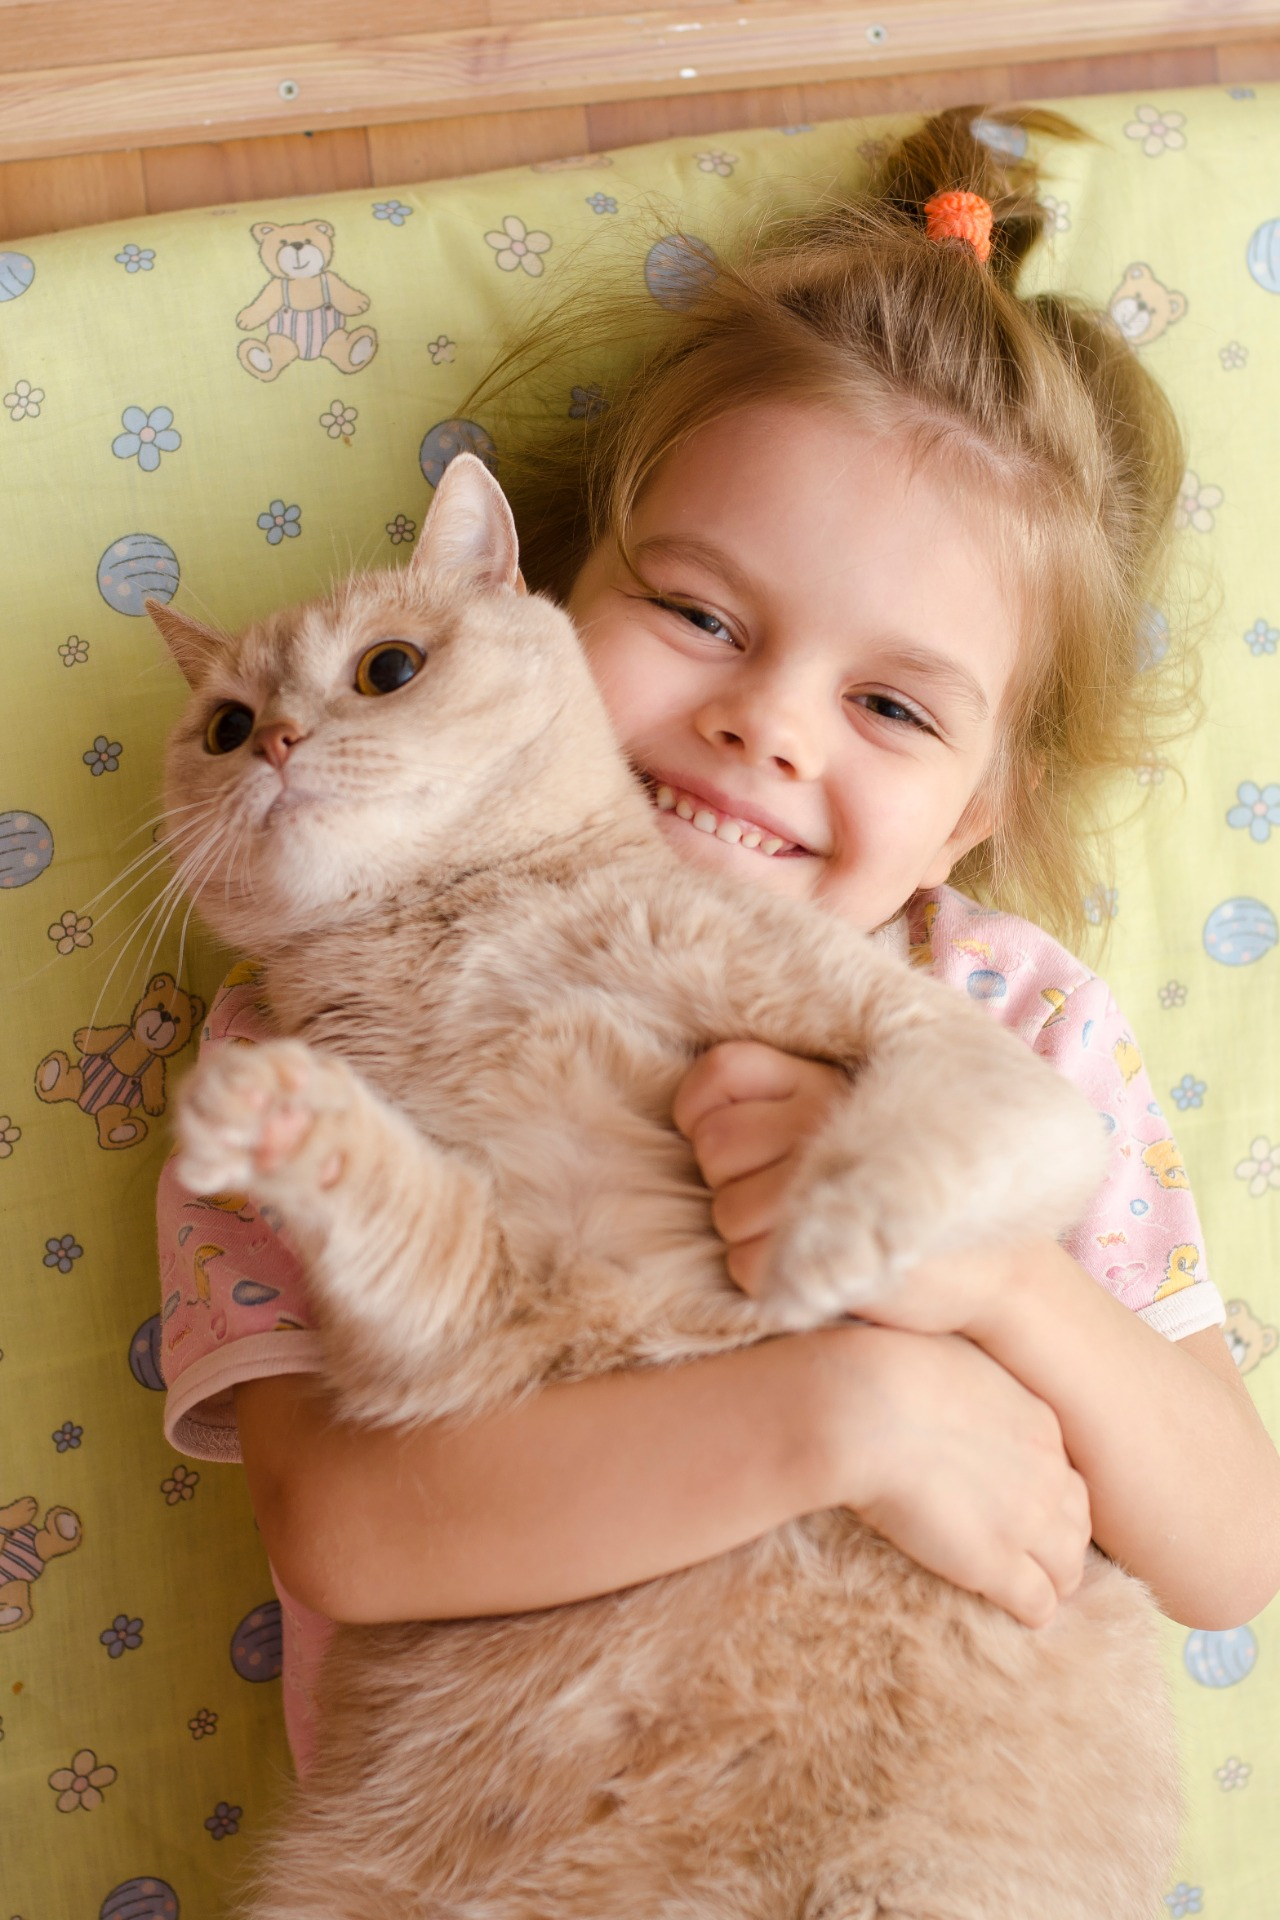 little girl hugging the cat lying on a bed